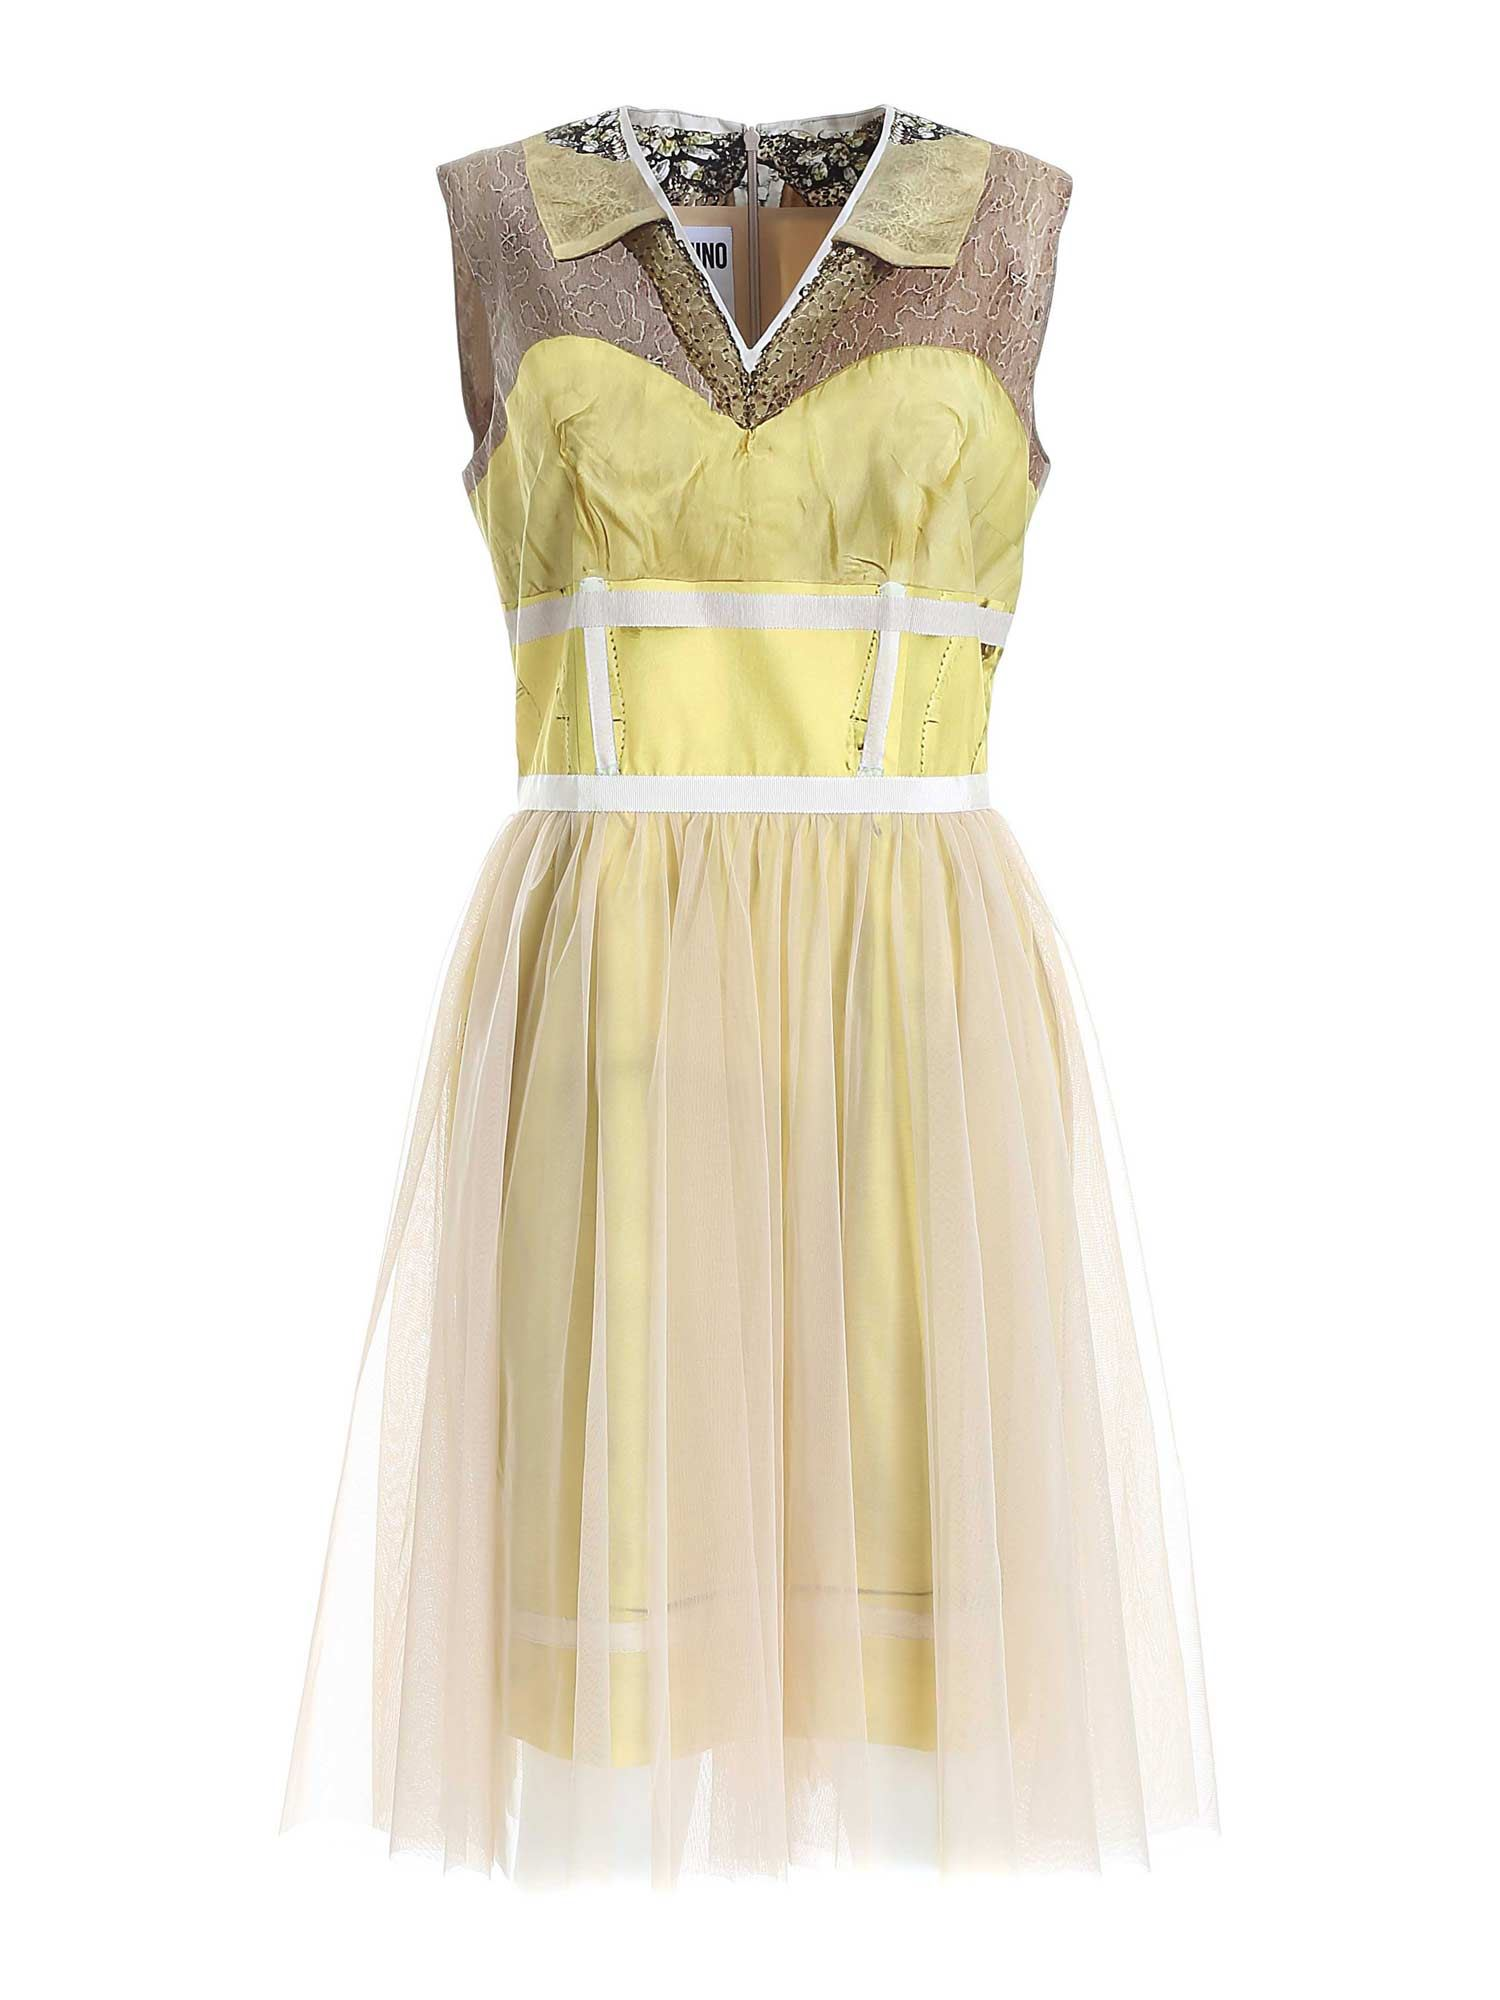 Moschino Cottons INSIDE OUT TROMPE-L'ŒIL DRESS IN YELLOW